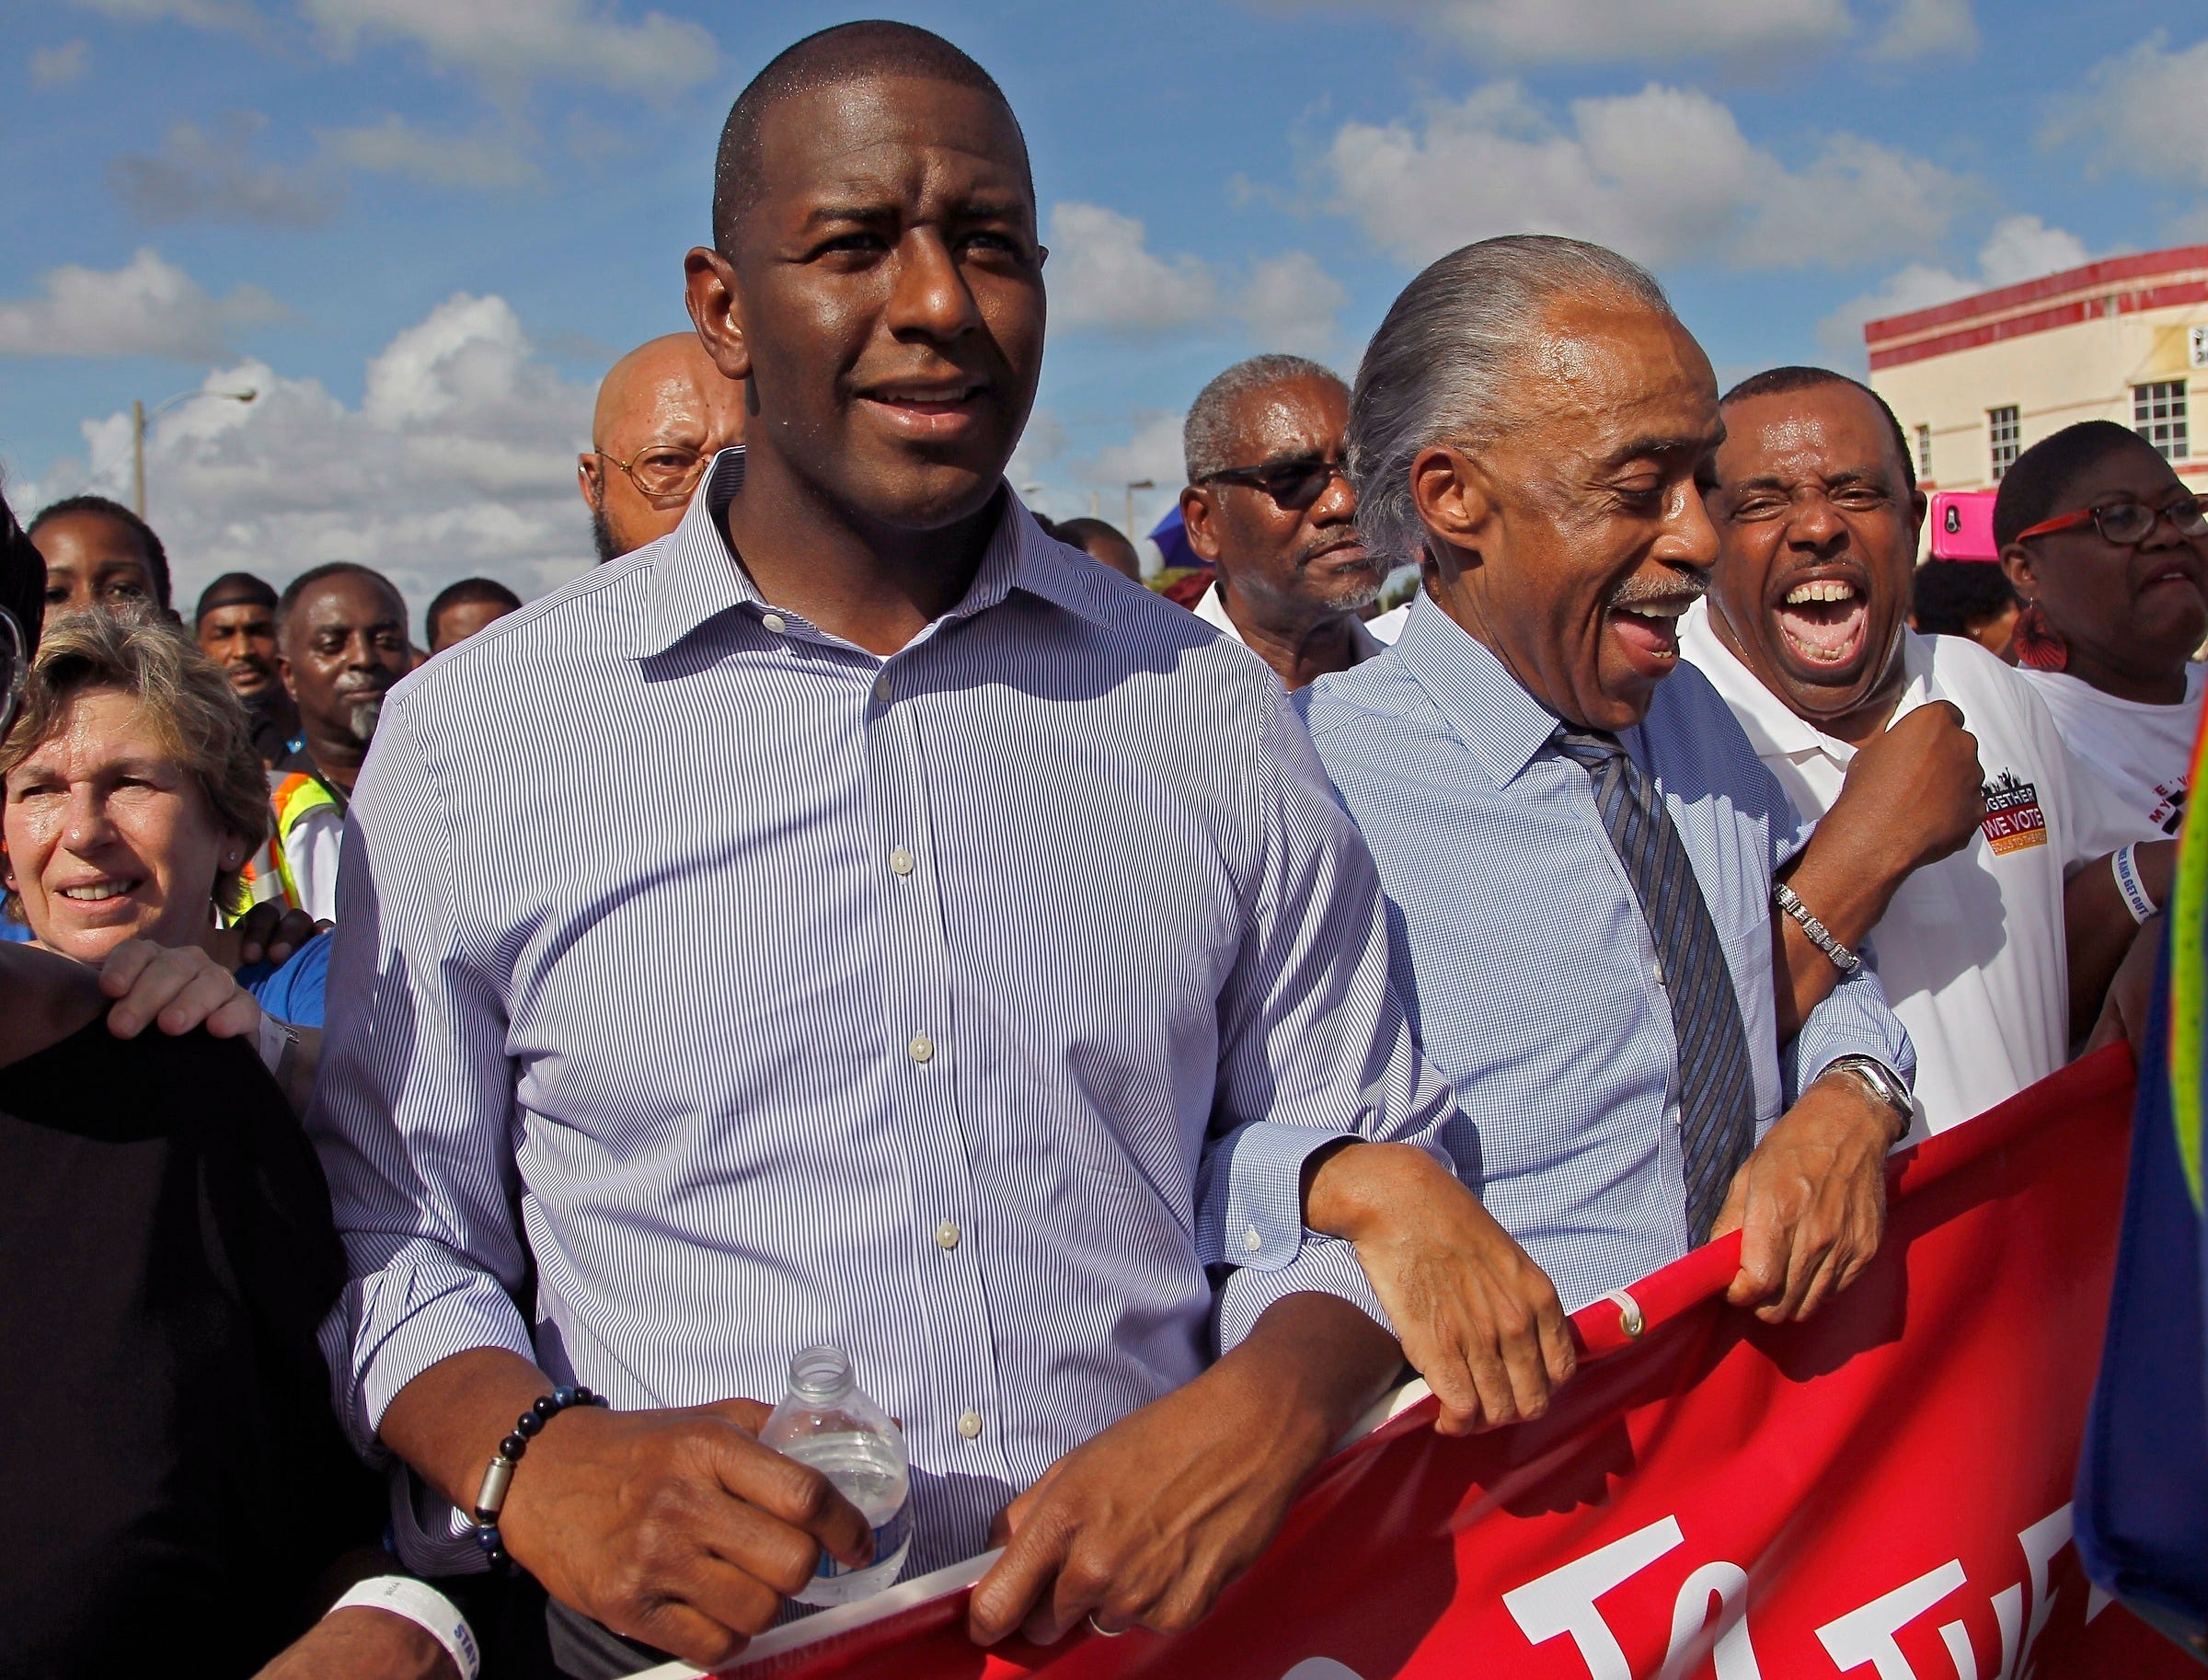 "Florida Democratic gubernatorial candidate Andrew Gillum, left, marches to the Caleb Center arm-locked with Rev. Al Sharpton, second from the left, and local politicians and supporters, as part of the ""Souls to the Polls"" one of many events prior to the elections on Sunday, Nov. 4, 2018."